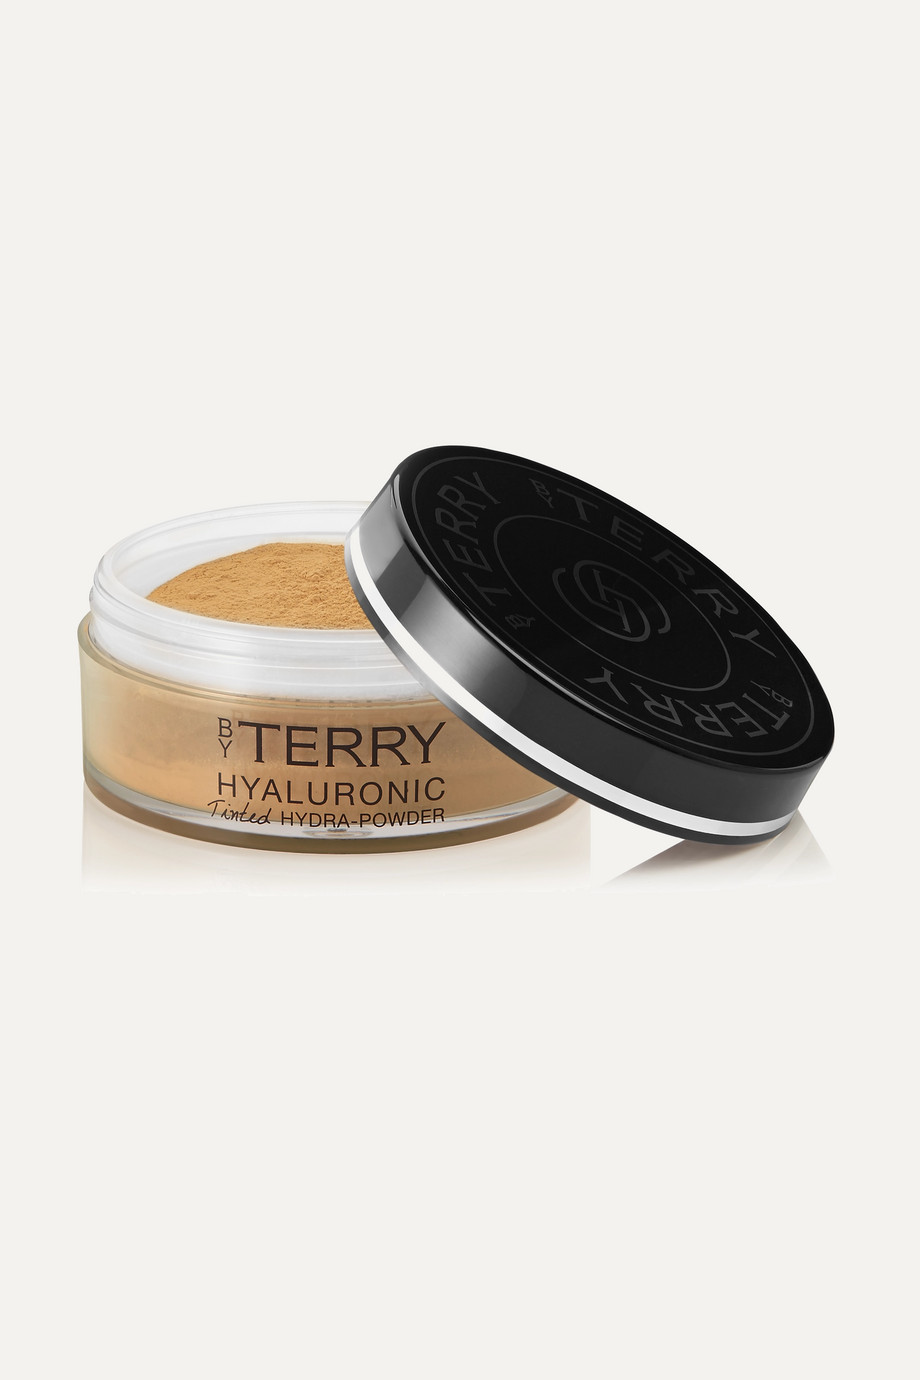 BY TERRY Hyaluronic Tinted Hydra-Powder - Medium Fair No.300